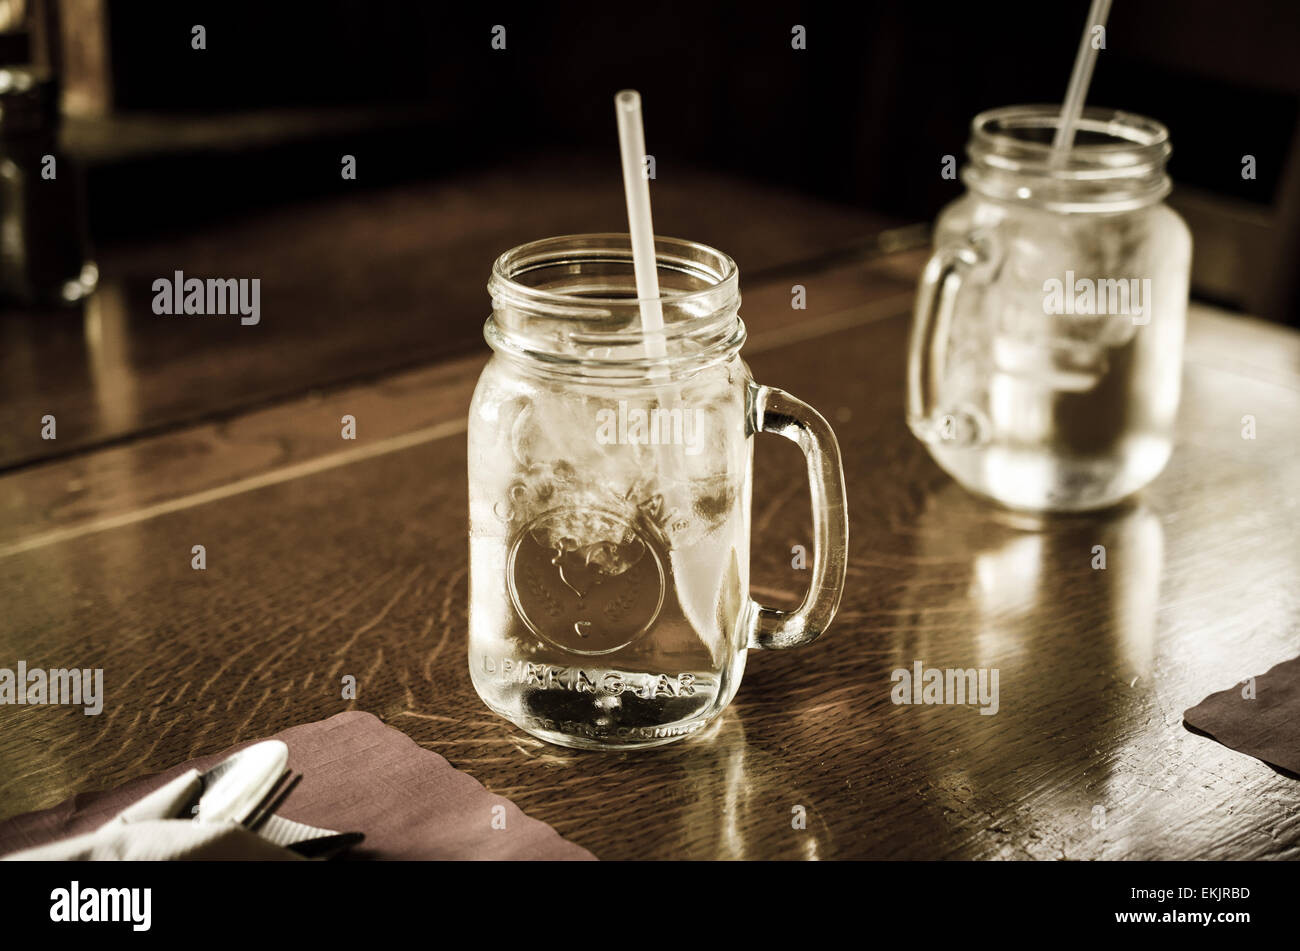 Mason jars sitting on a country table. - Stock Image